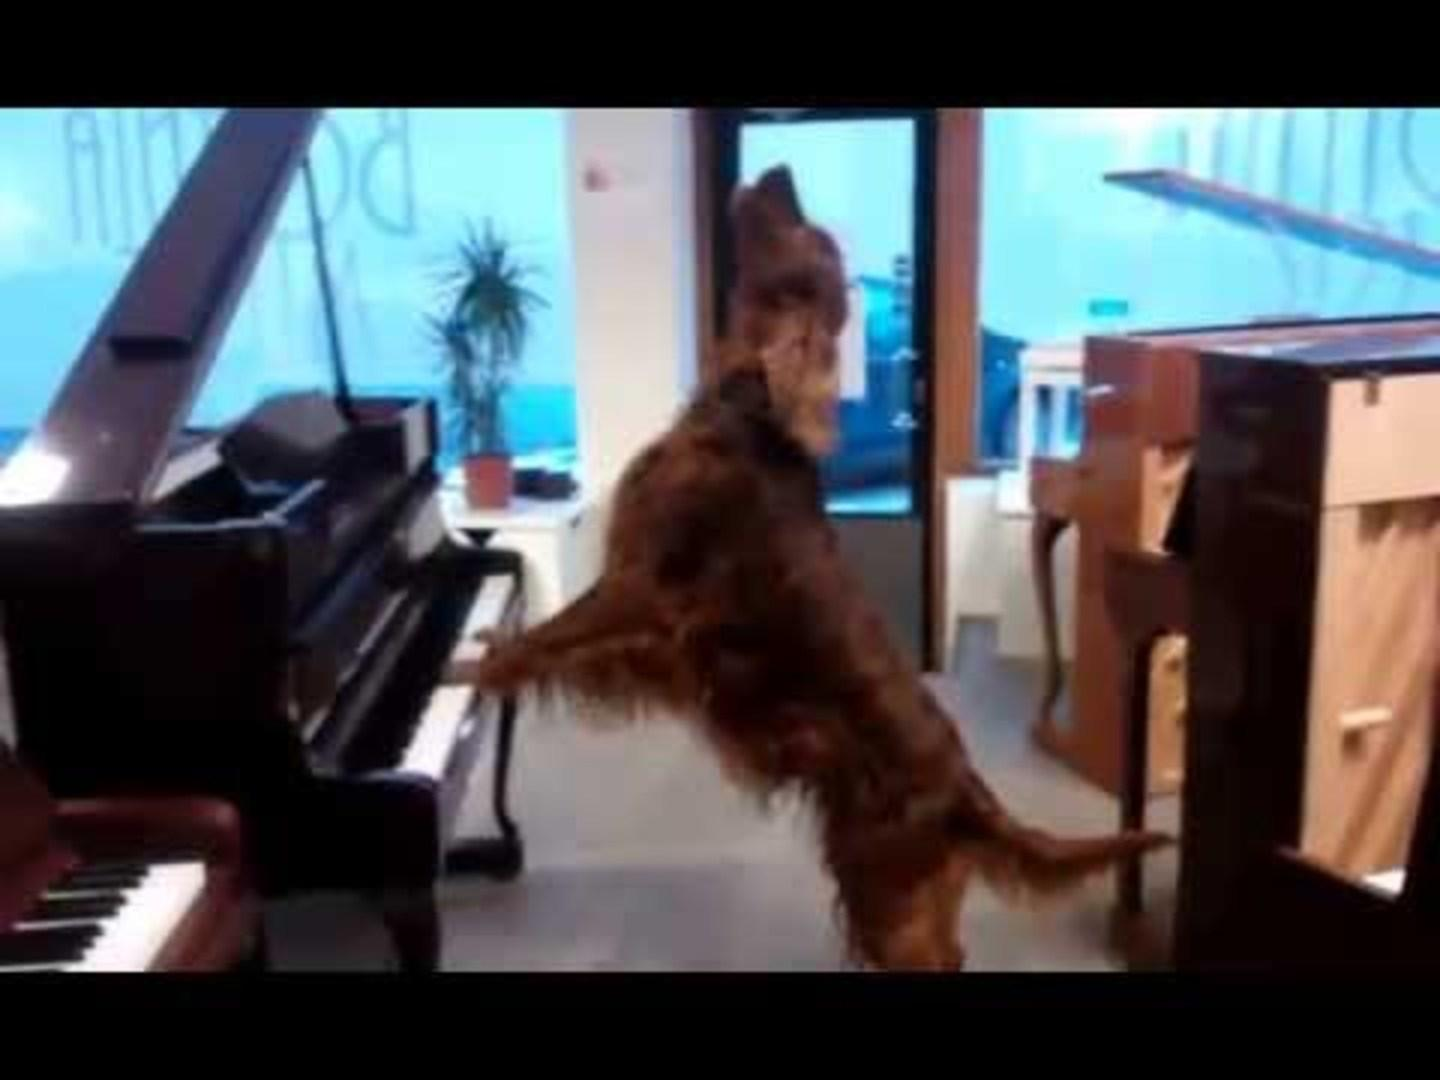 Irish Setter Plays Piano and Sings | Jukin Media Inc